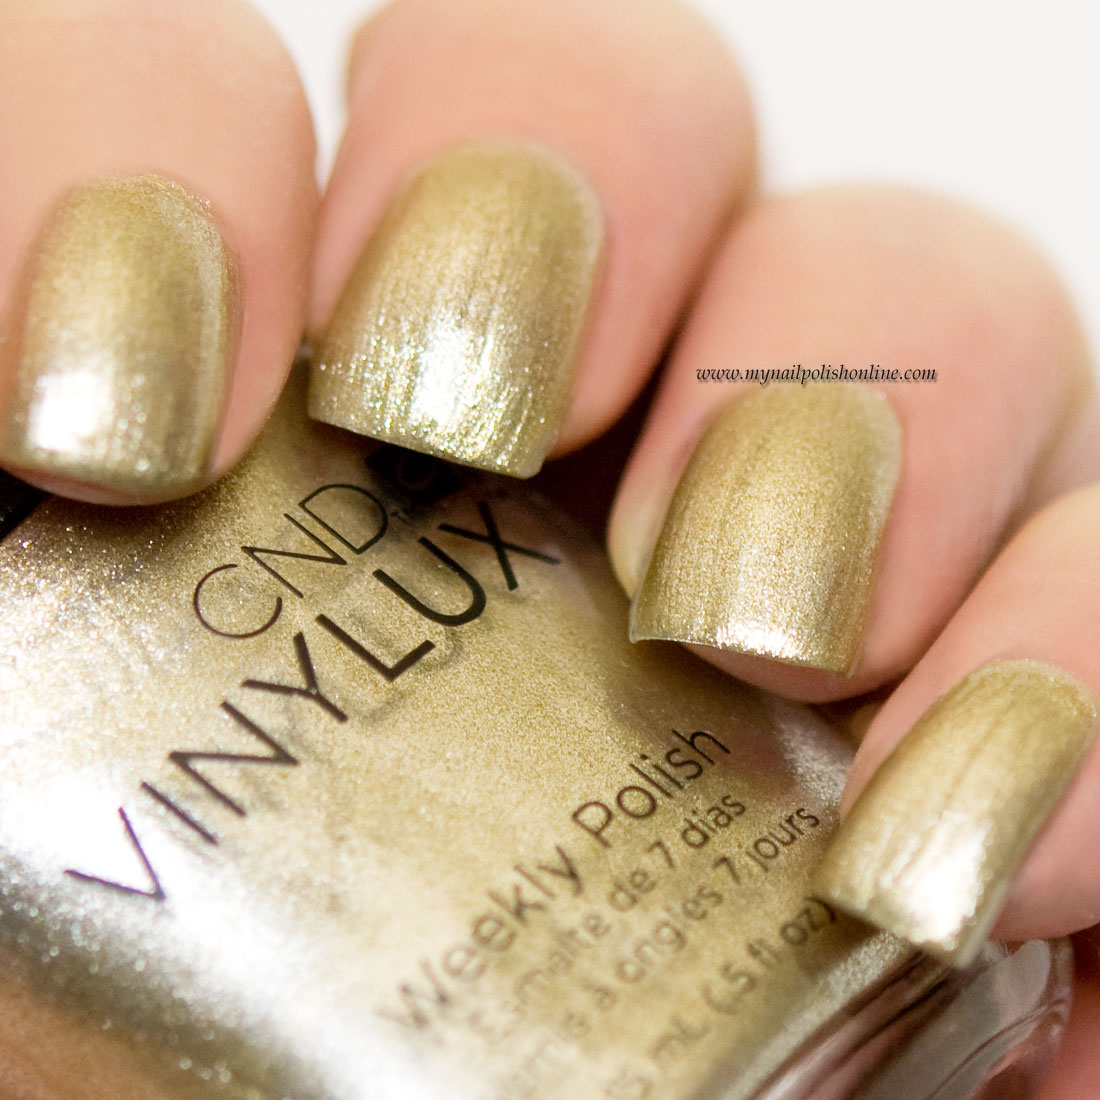 CND Vinylux - Locket Love - My Nail Polish Online